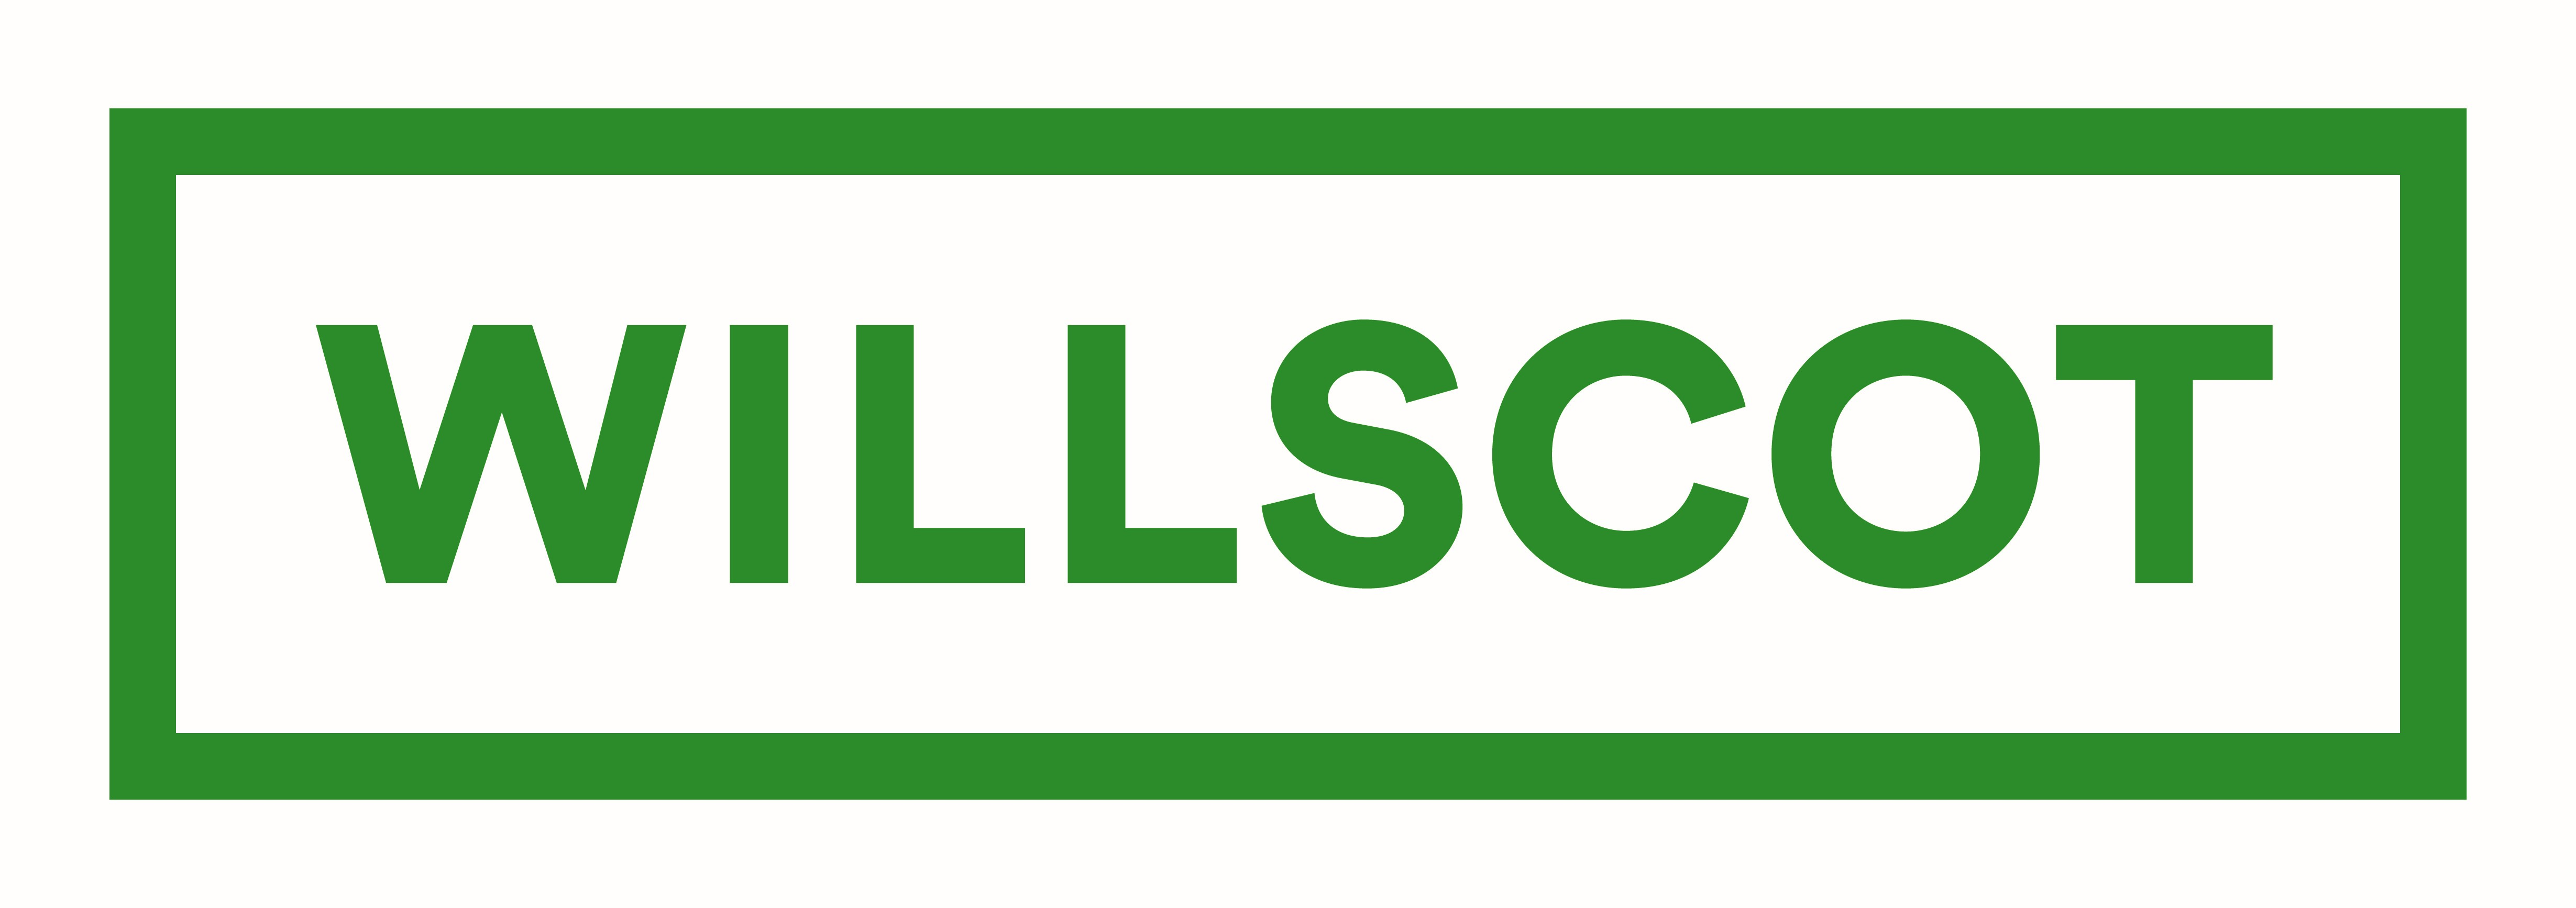 WILLSCOT logo.jpg